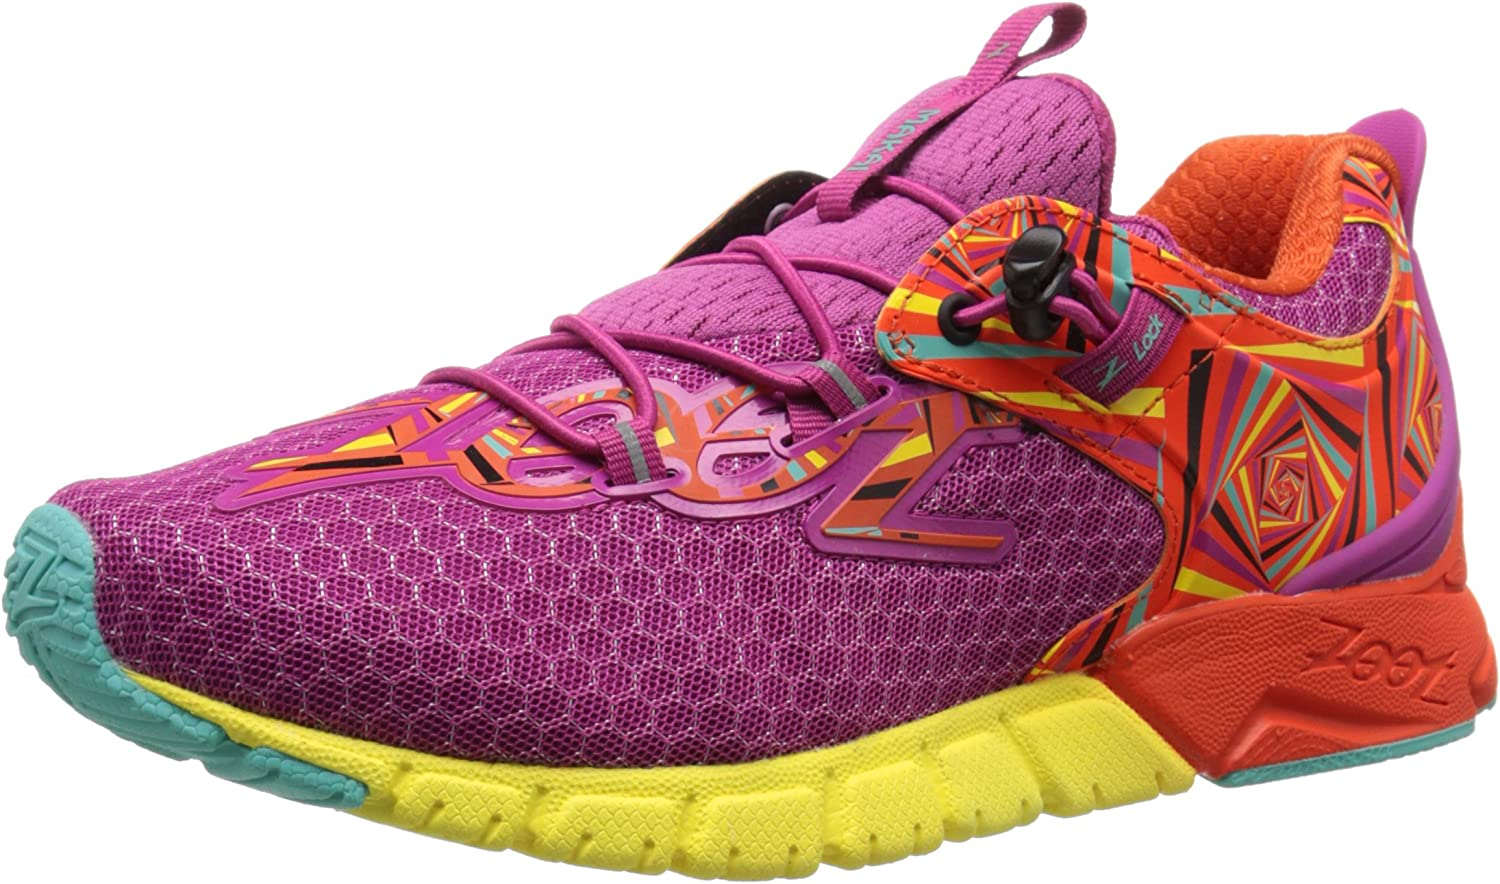 Zoot Women's W Makai Running shoes